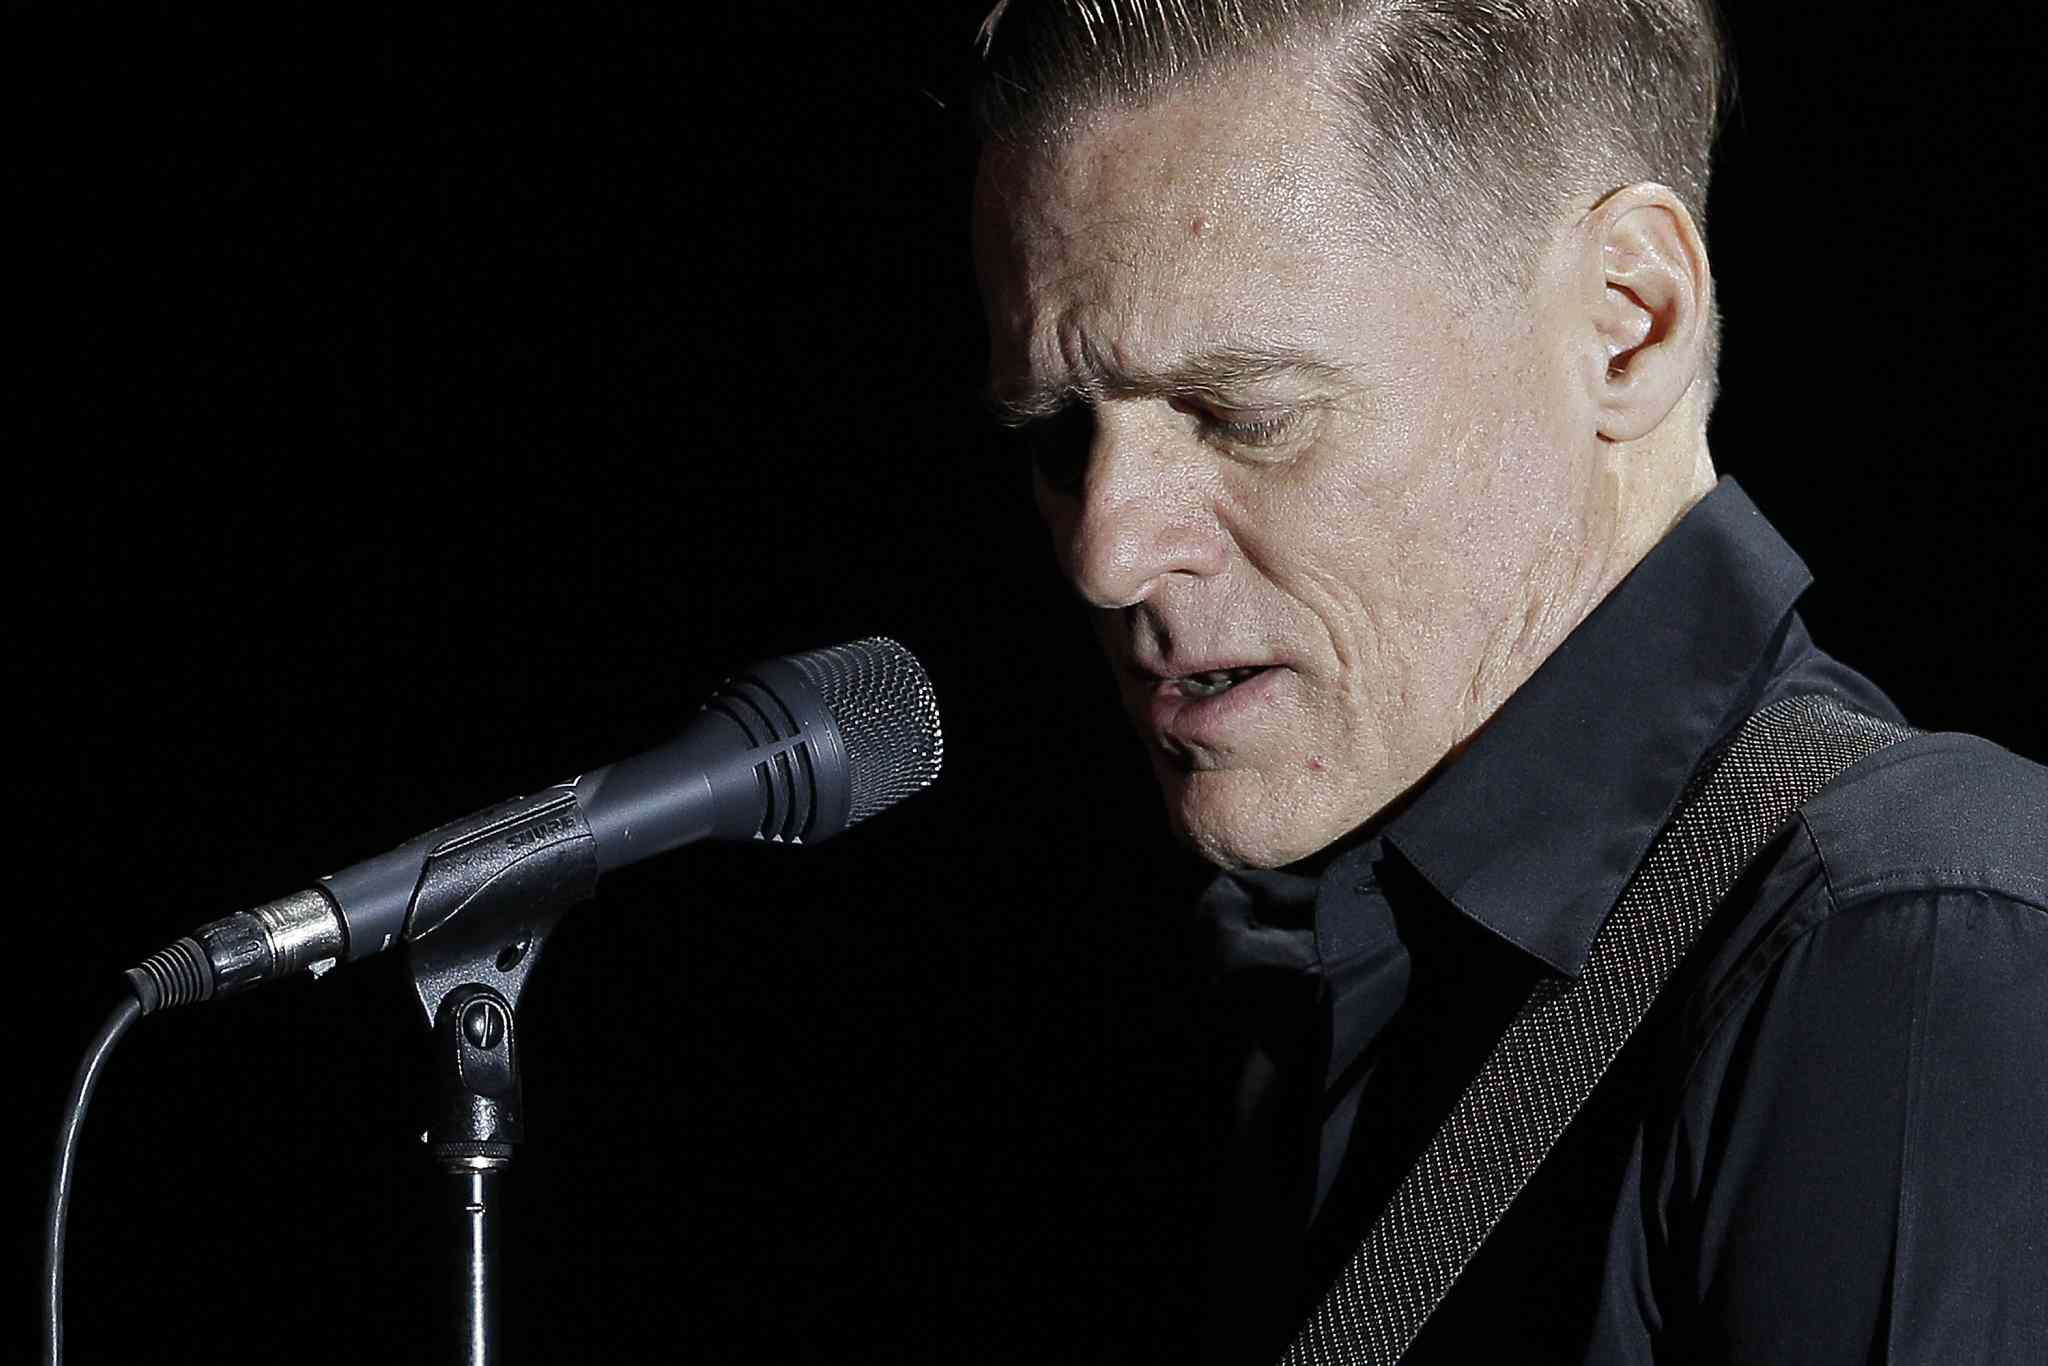 Bryan Adams performs at the Centennial Concert Hall in Winnipeg Monday. The Canadian pop legend is in the midst of his acoustic Bare Bones Tour with pianist Gary Breit.